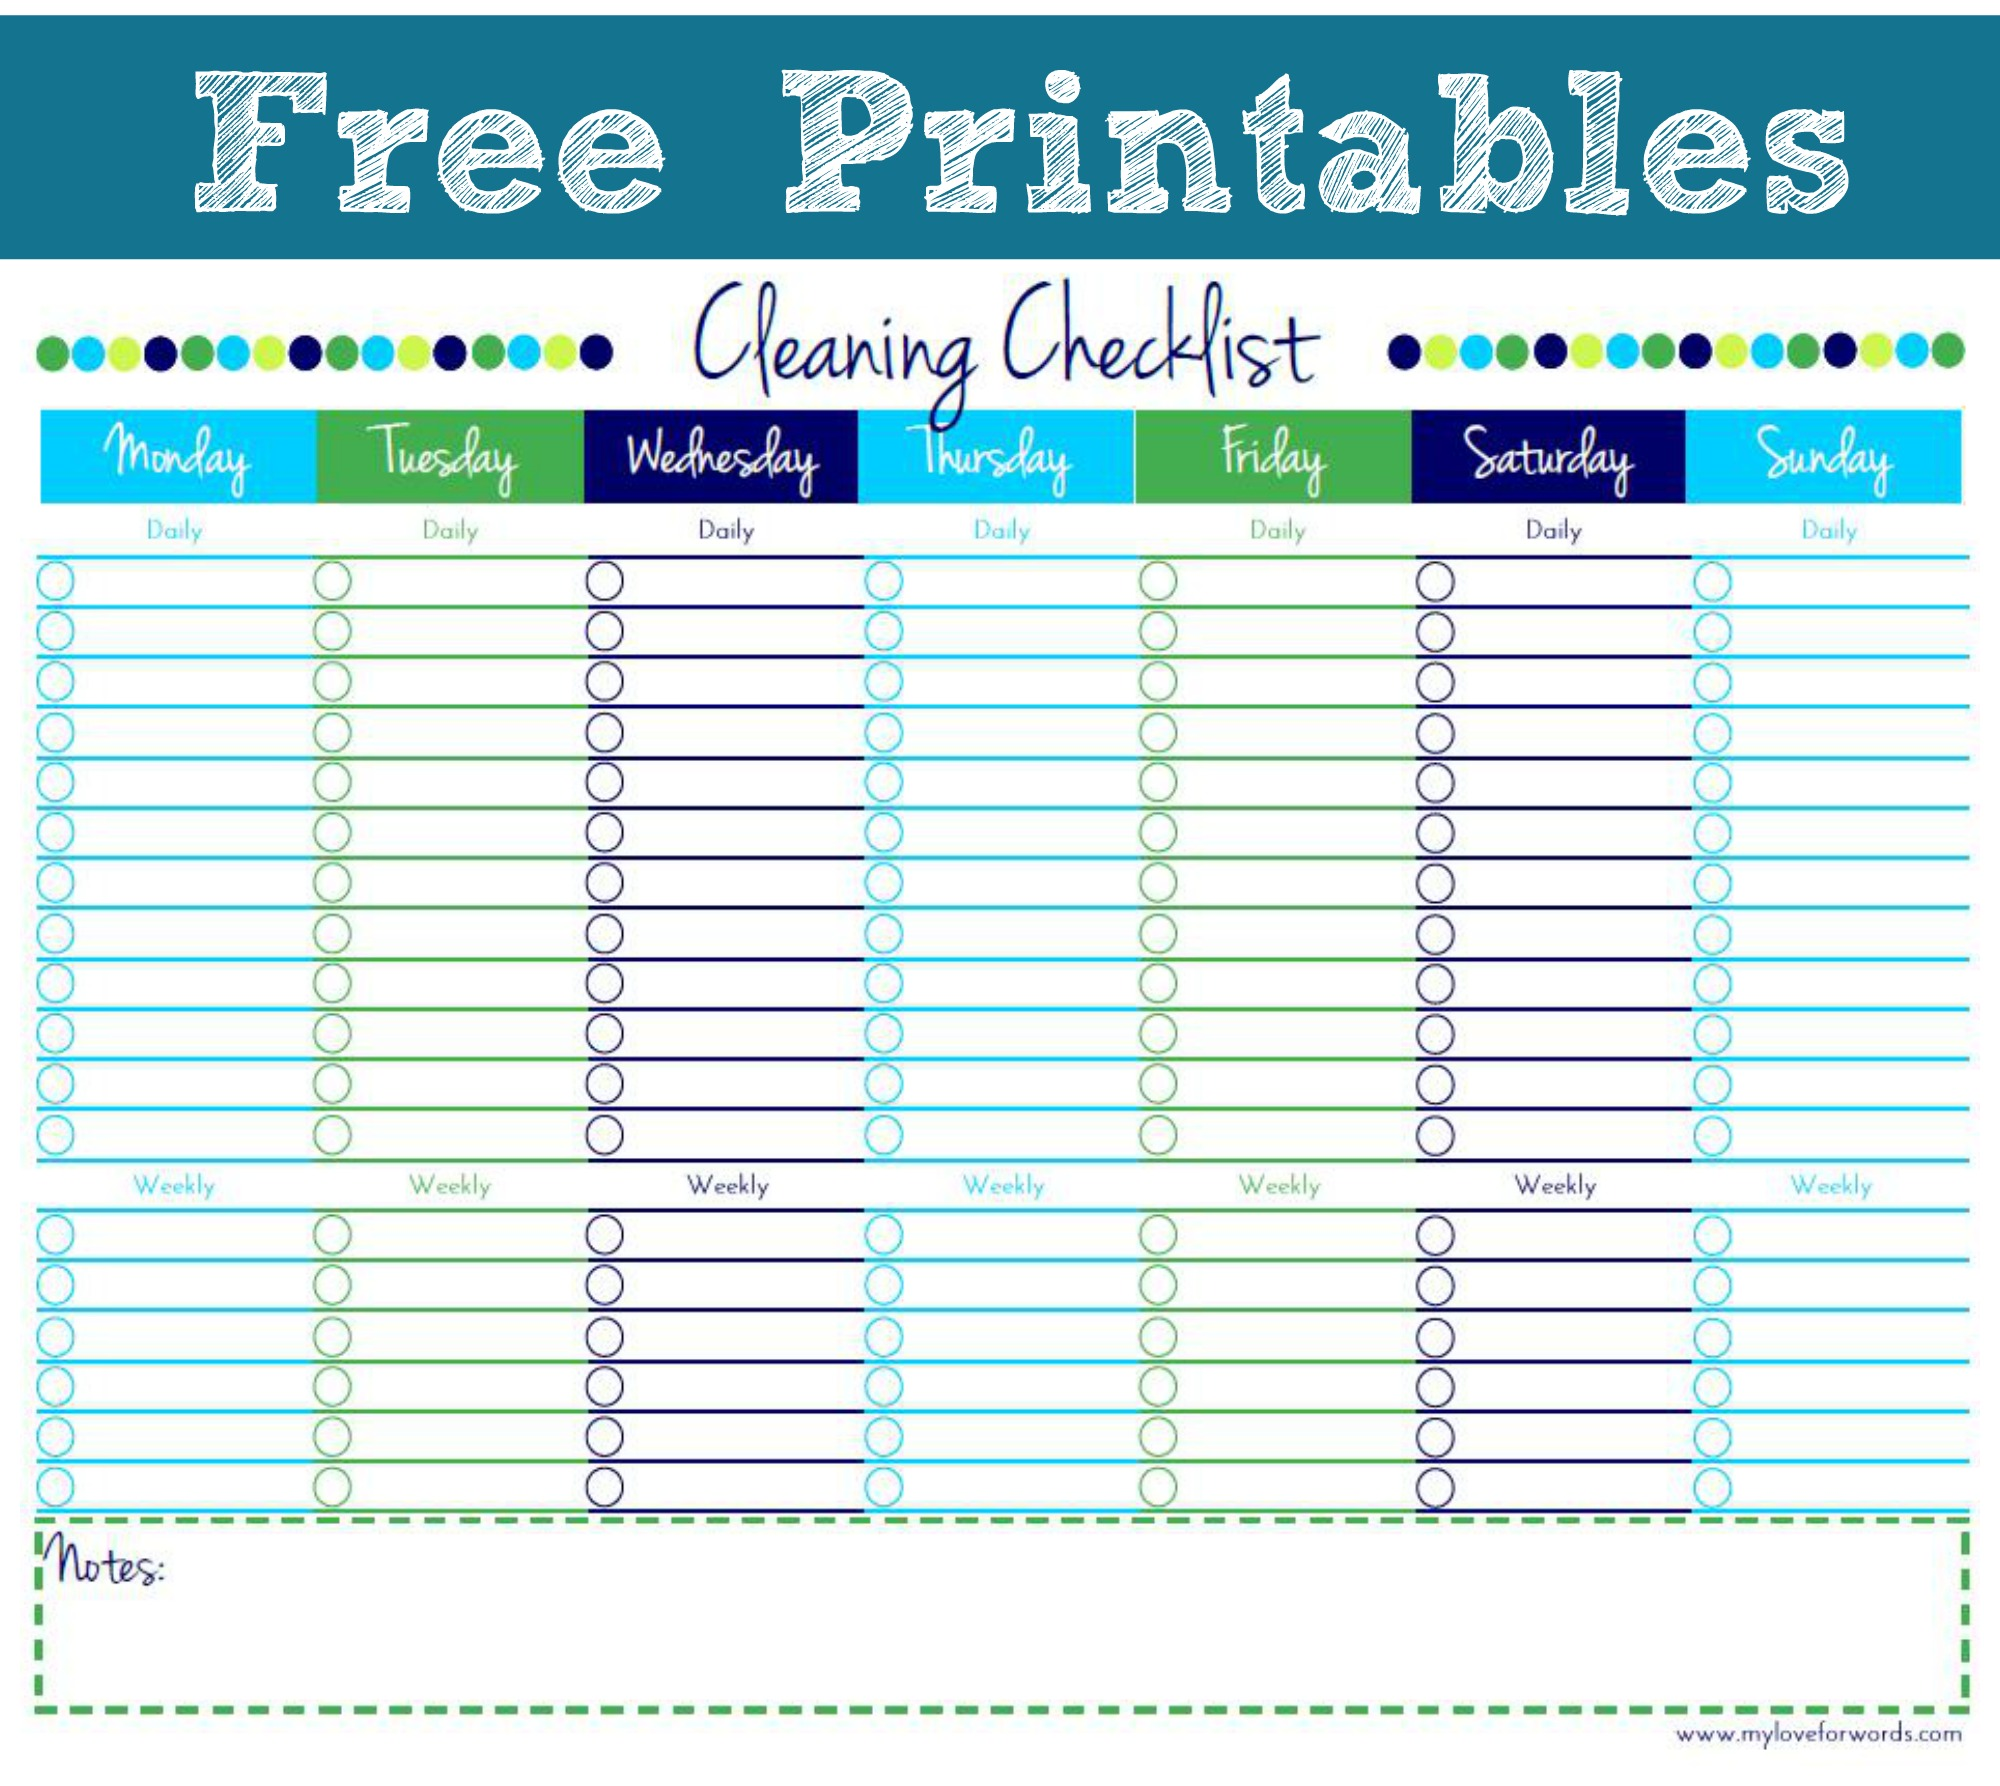 8 Images of Cleaning Schedule And Checklist Printable